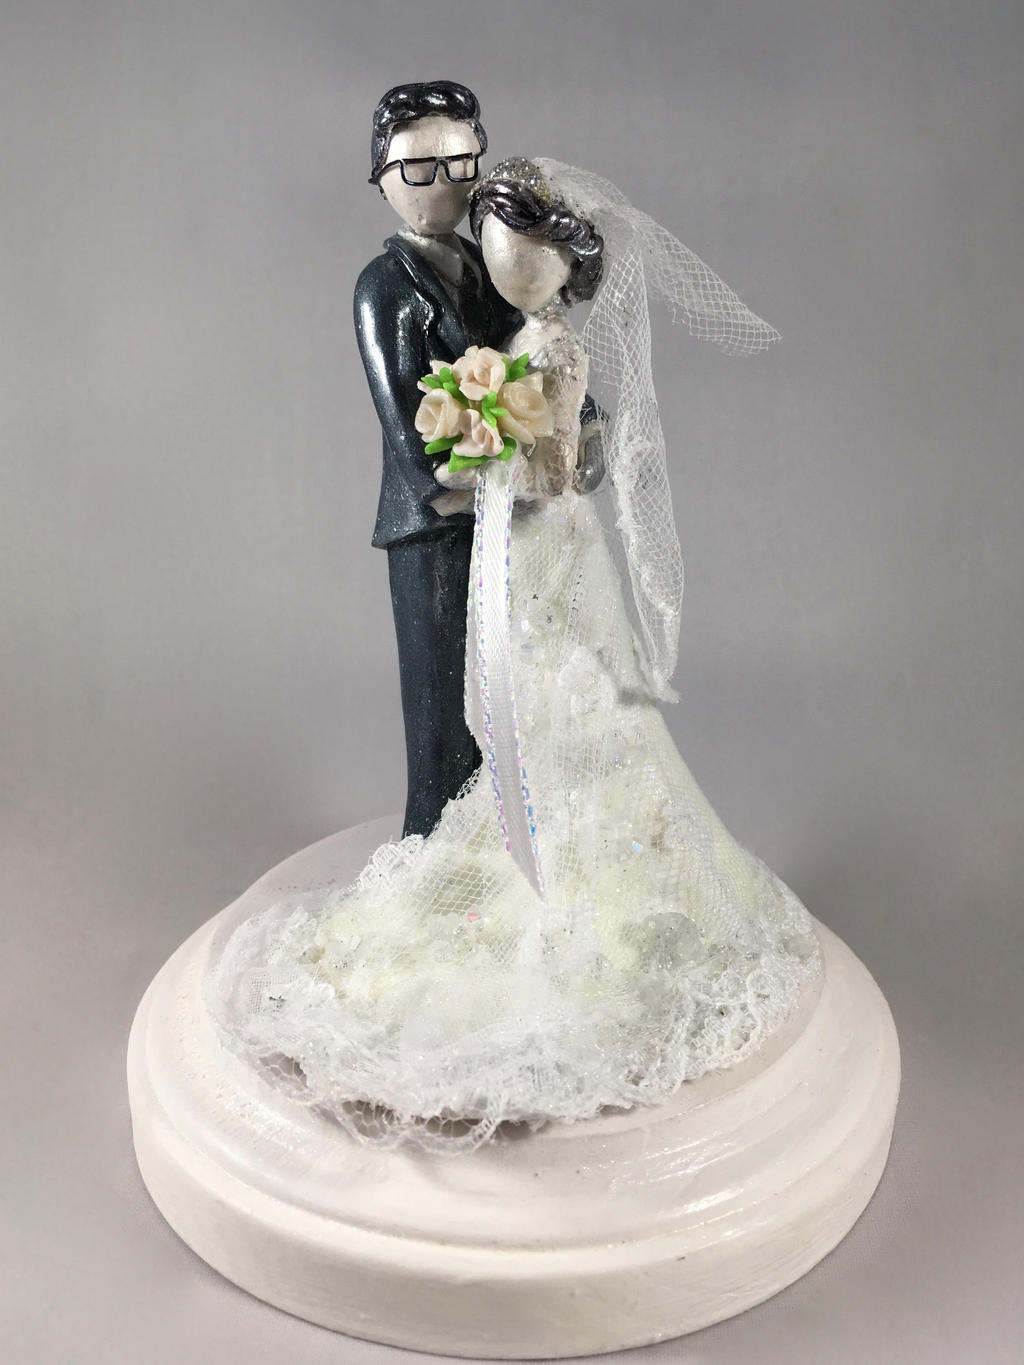 custom made wedding cake toppers custom wedding cake topper 2 by minnichi on deviantart 3246